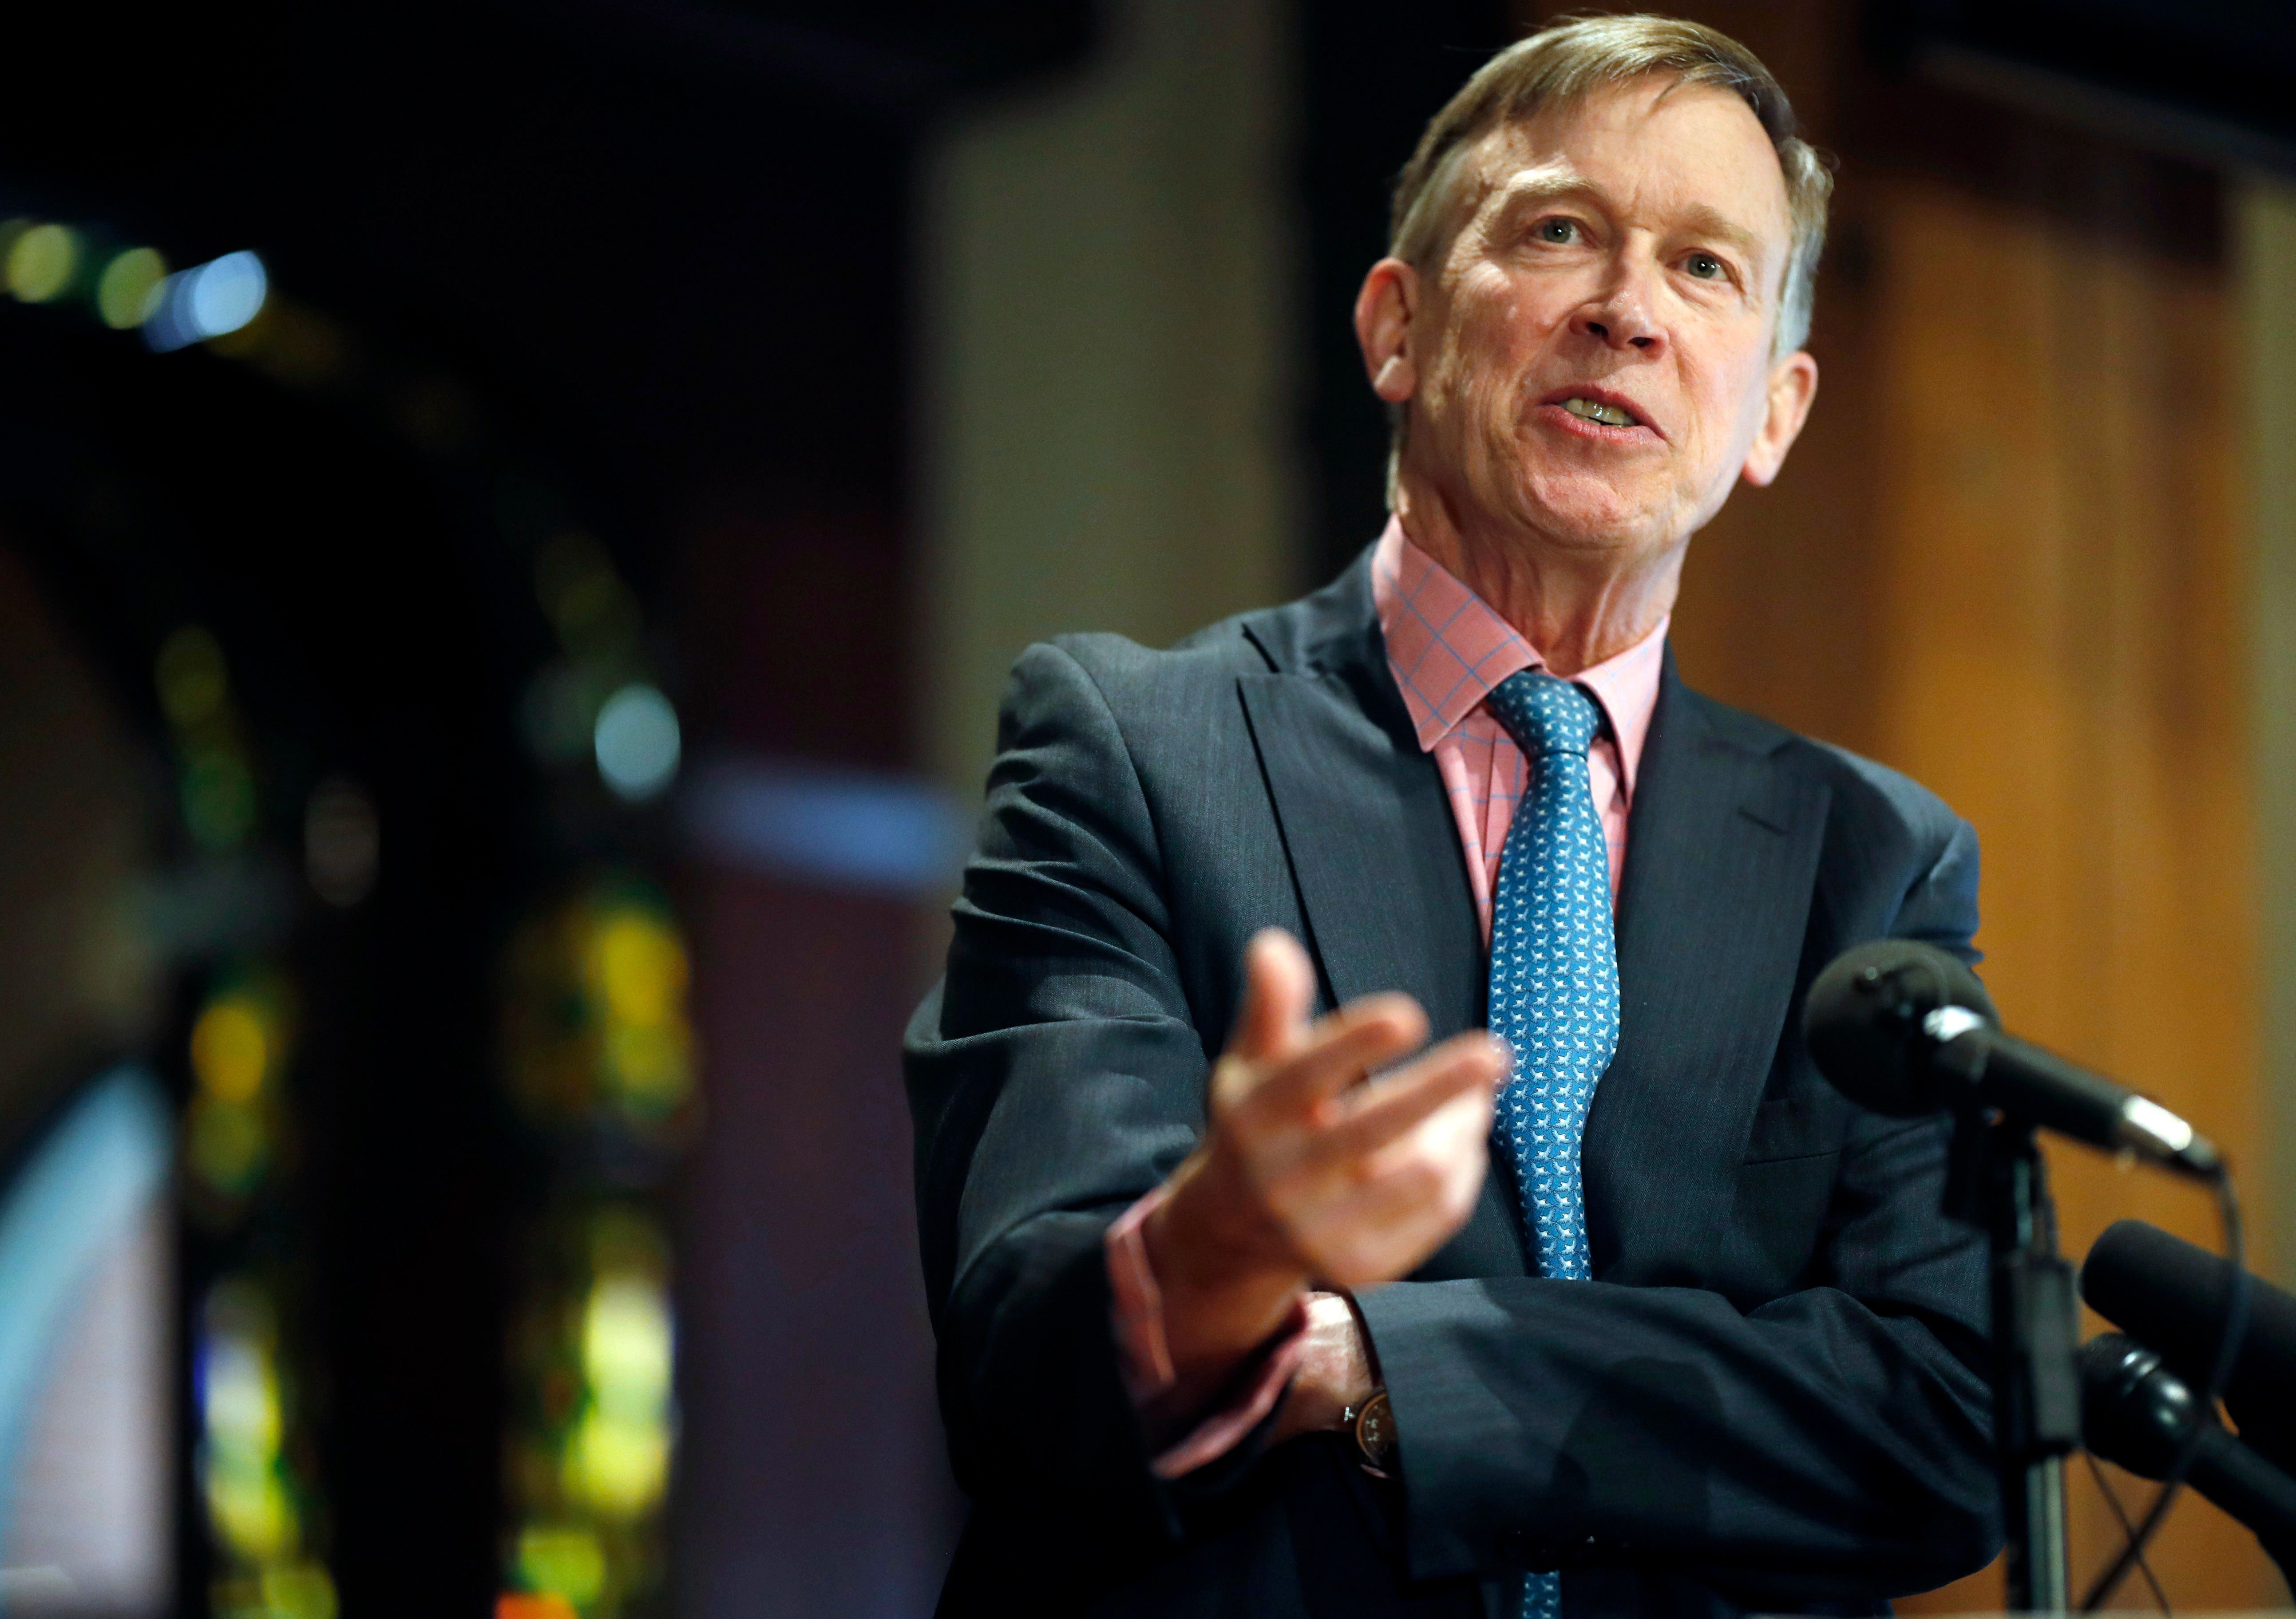 """John Hickenlooper, the former governor of Colorado, calls himself an """"extreme moderate."""""""